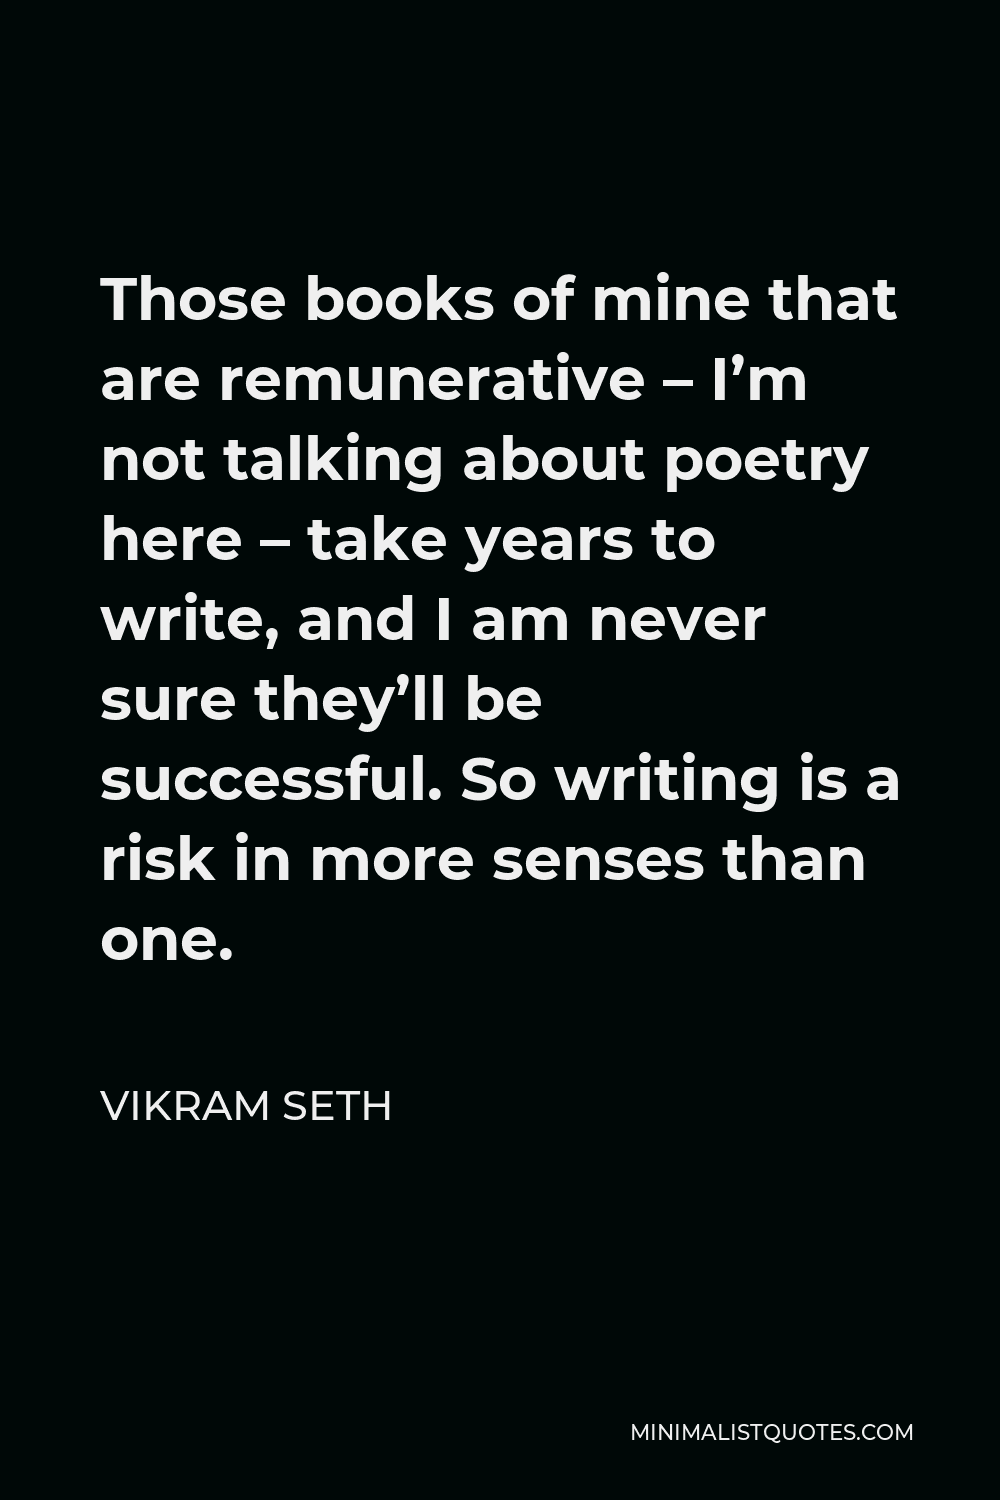 Vikram Seth Quote - Those books of mine that are remunerative – I'm not talking about poetry here – take years to write, and I am never sure they'll be successful. So writing is a risk in more senses than one.